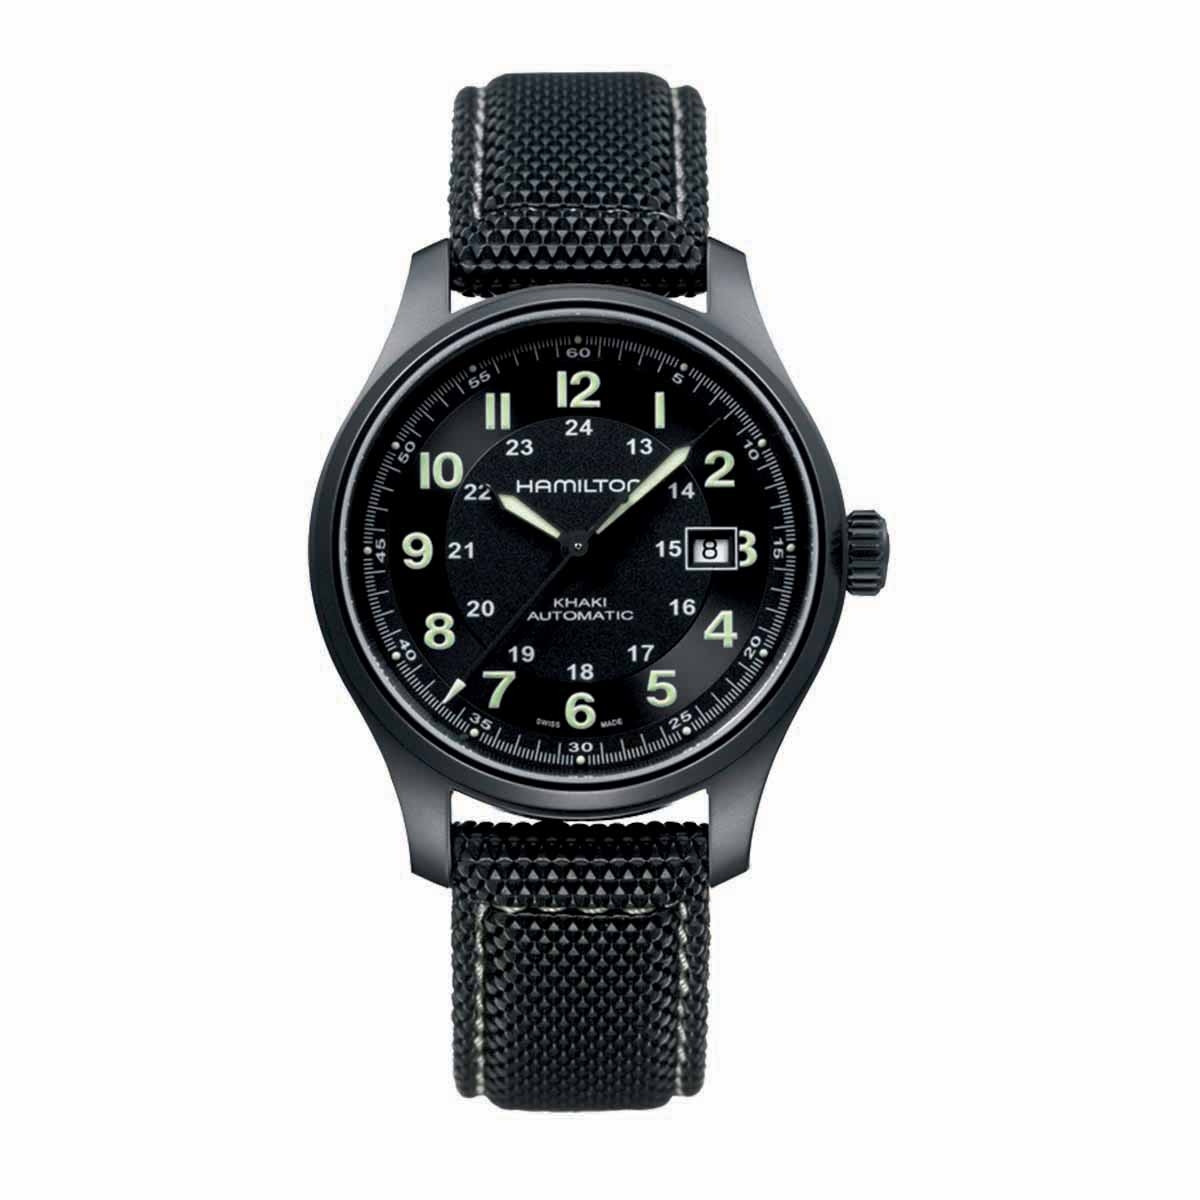 New Man's Hamilton Khaki Field